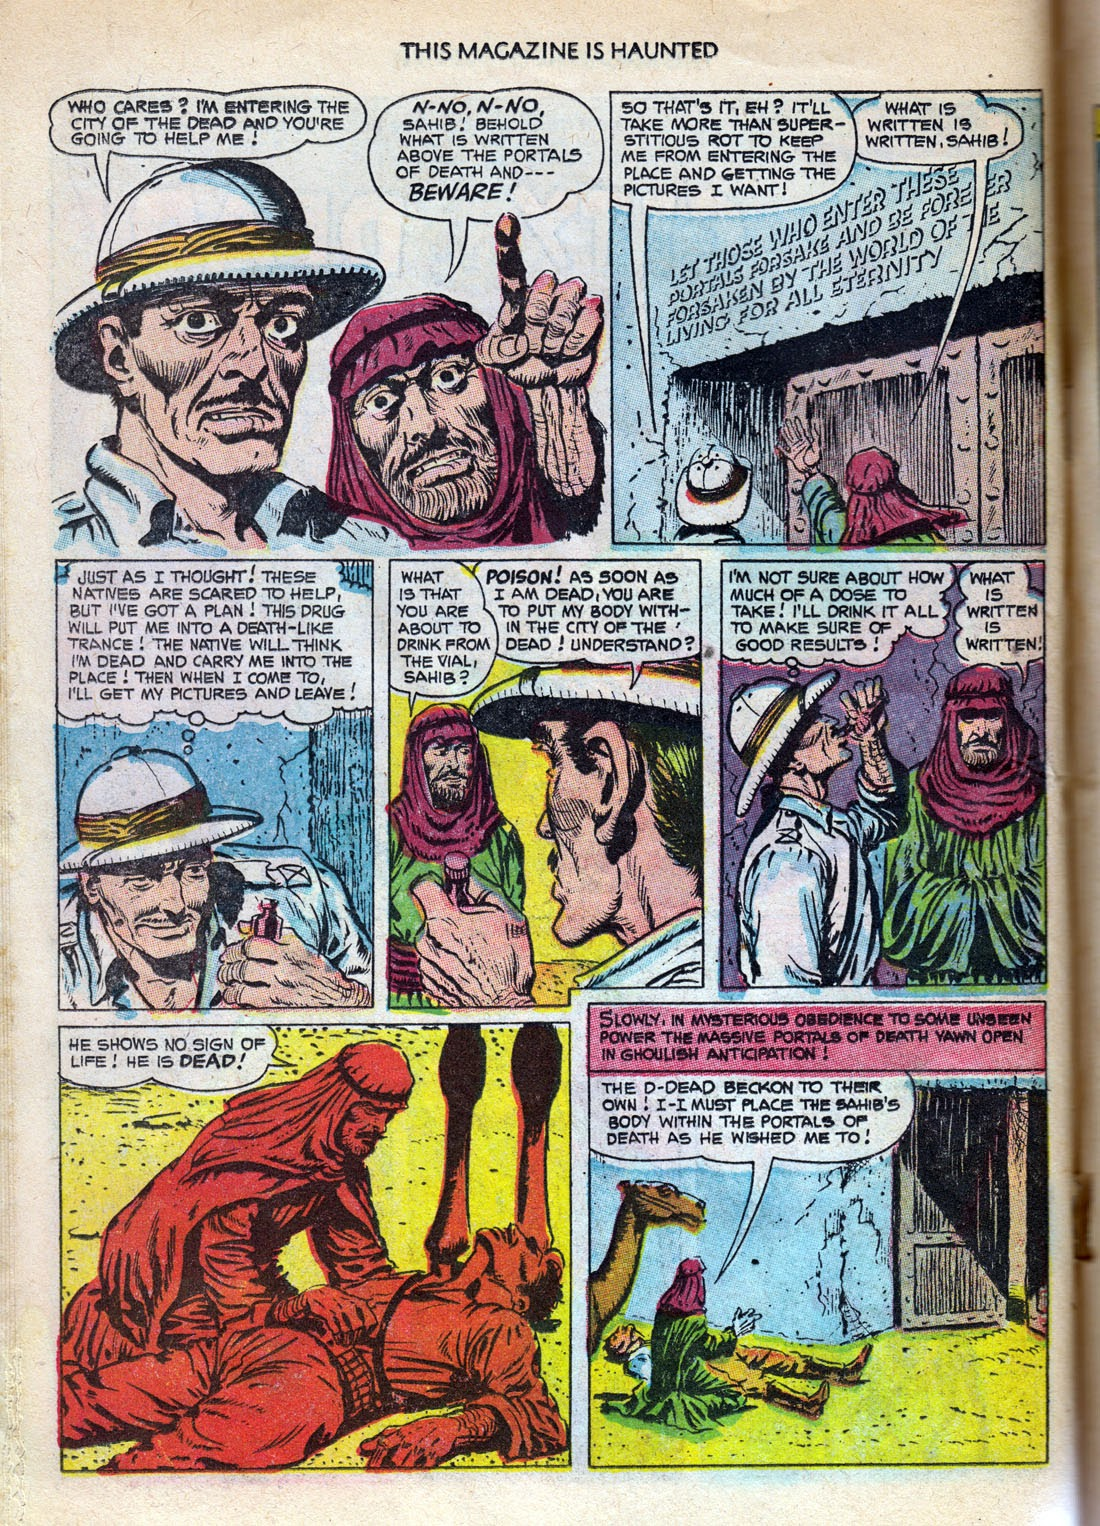 Read online This Magazine Is Haunted comic -  Issue #10 - 14